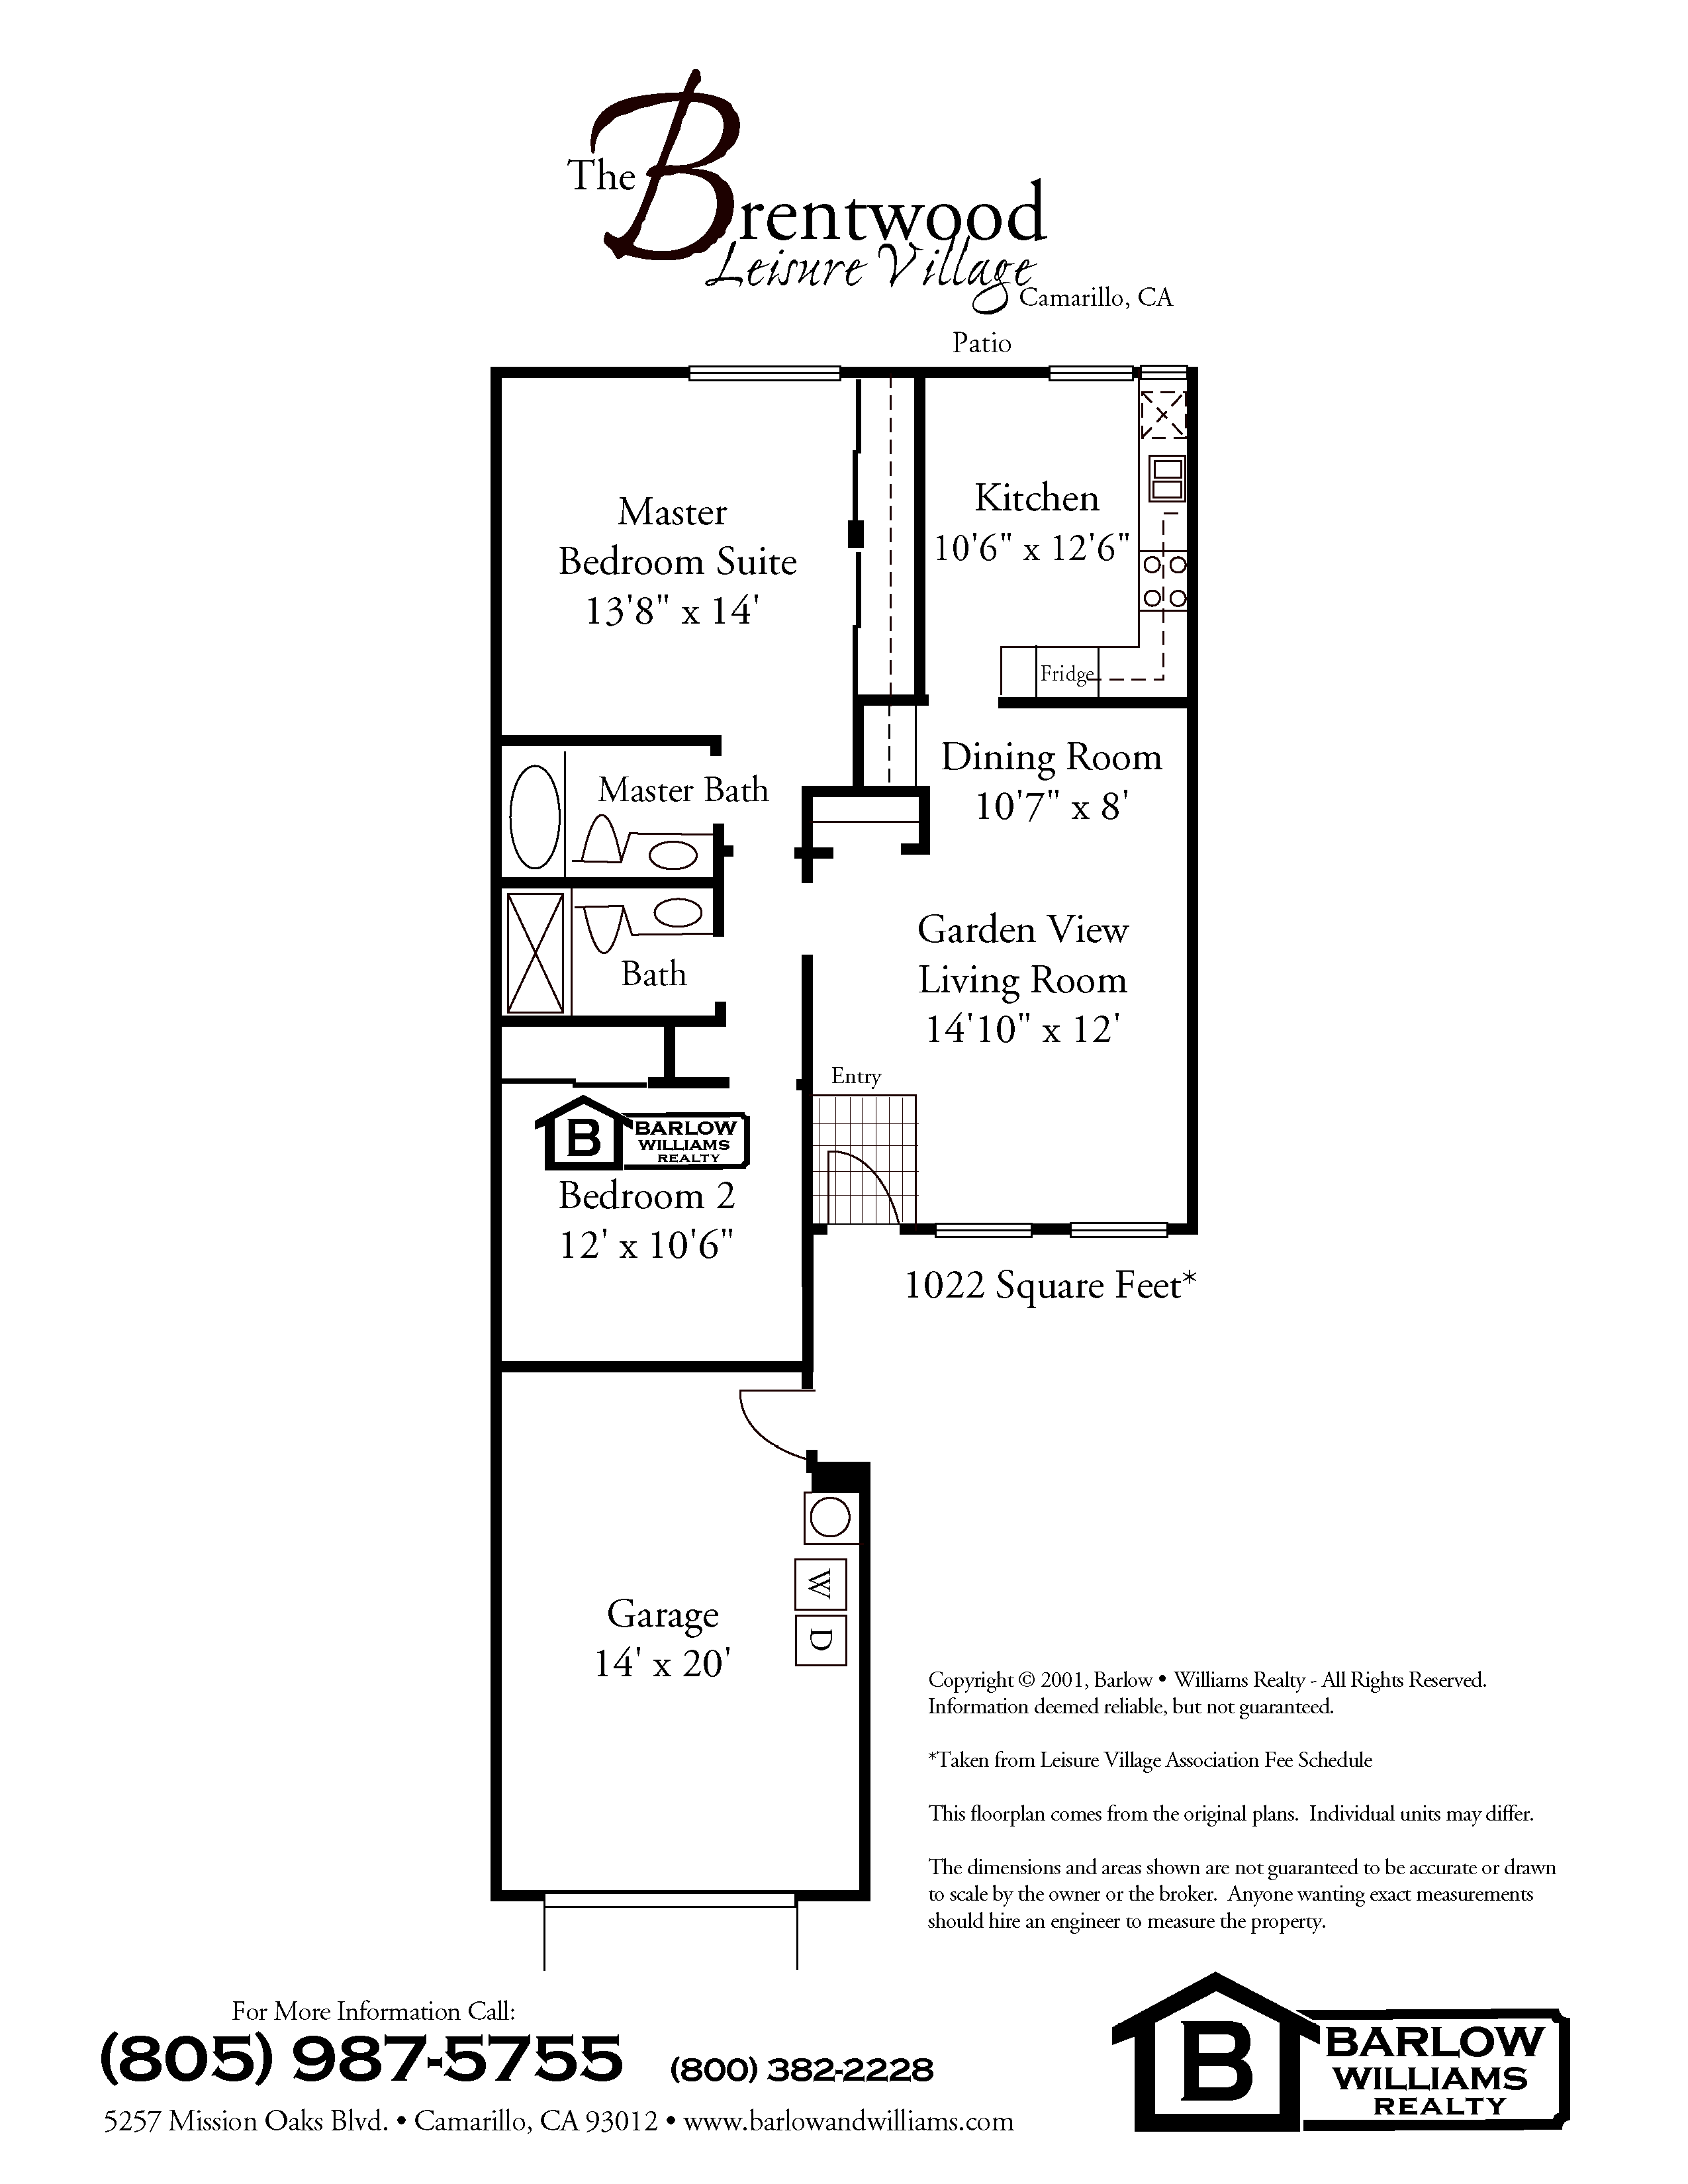 Leisure village camarillo floor plans for Brentwood house plan